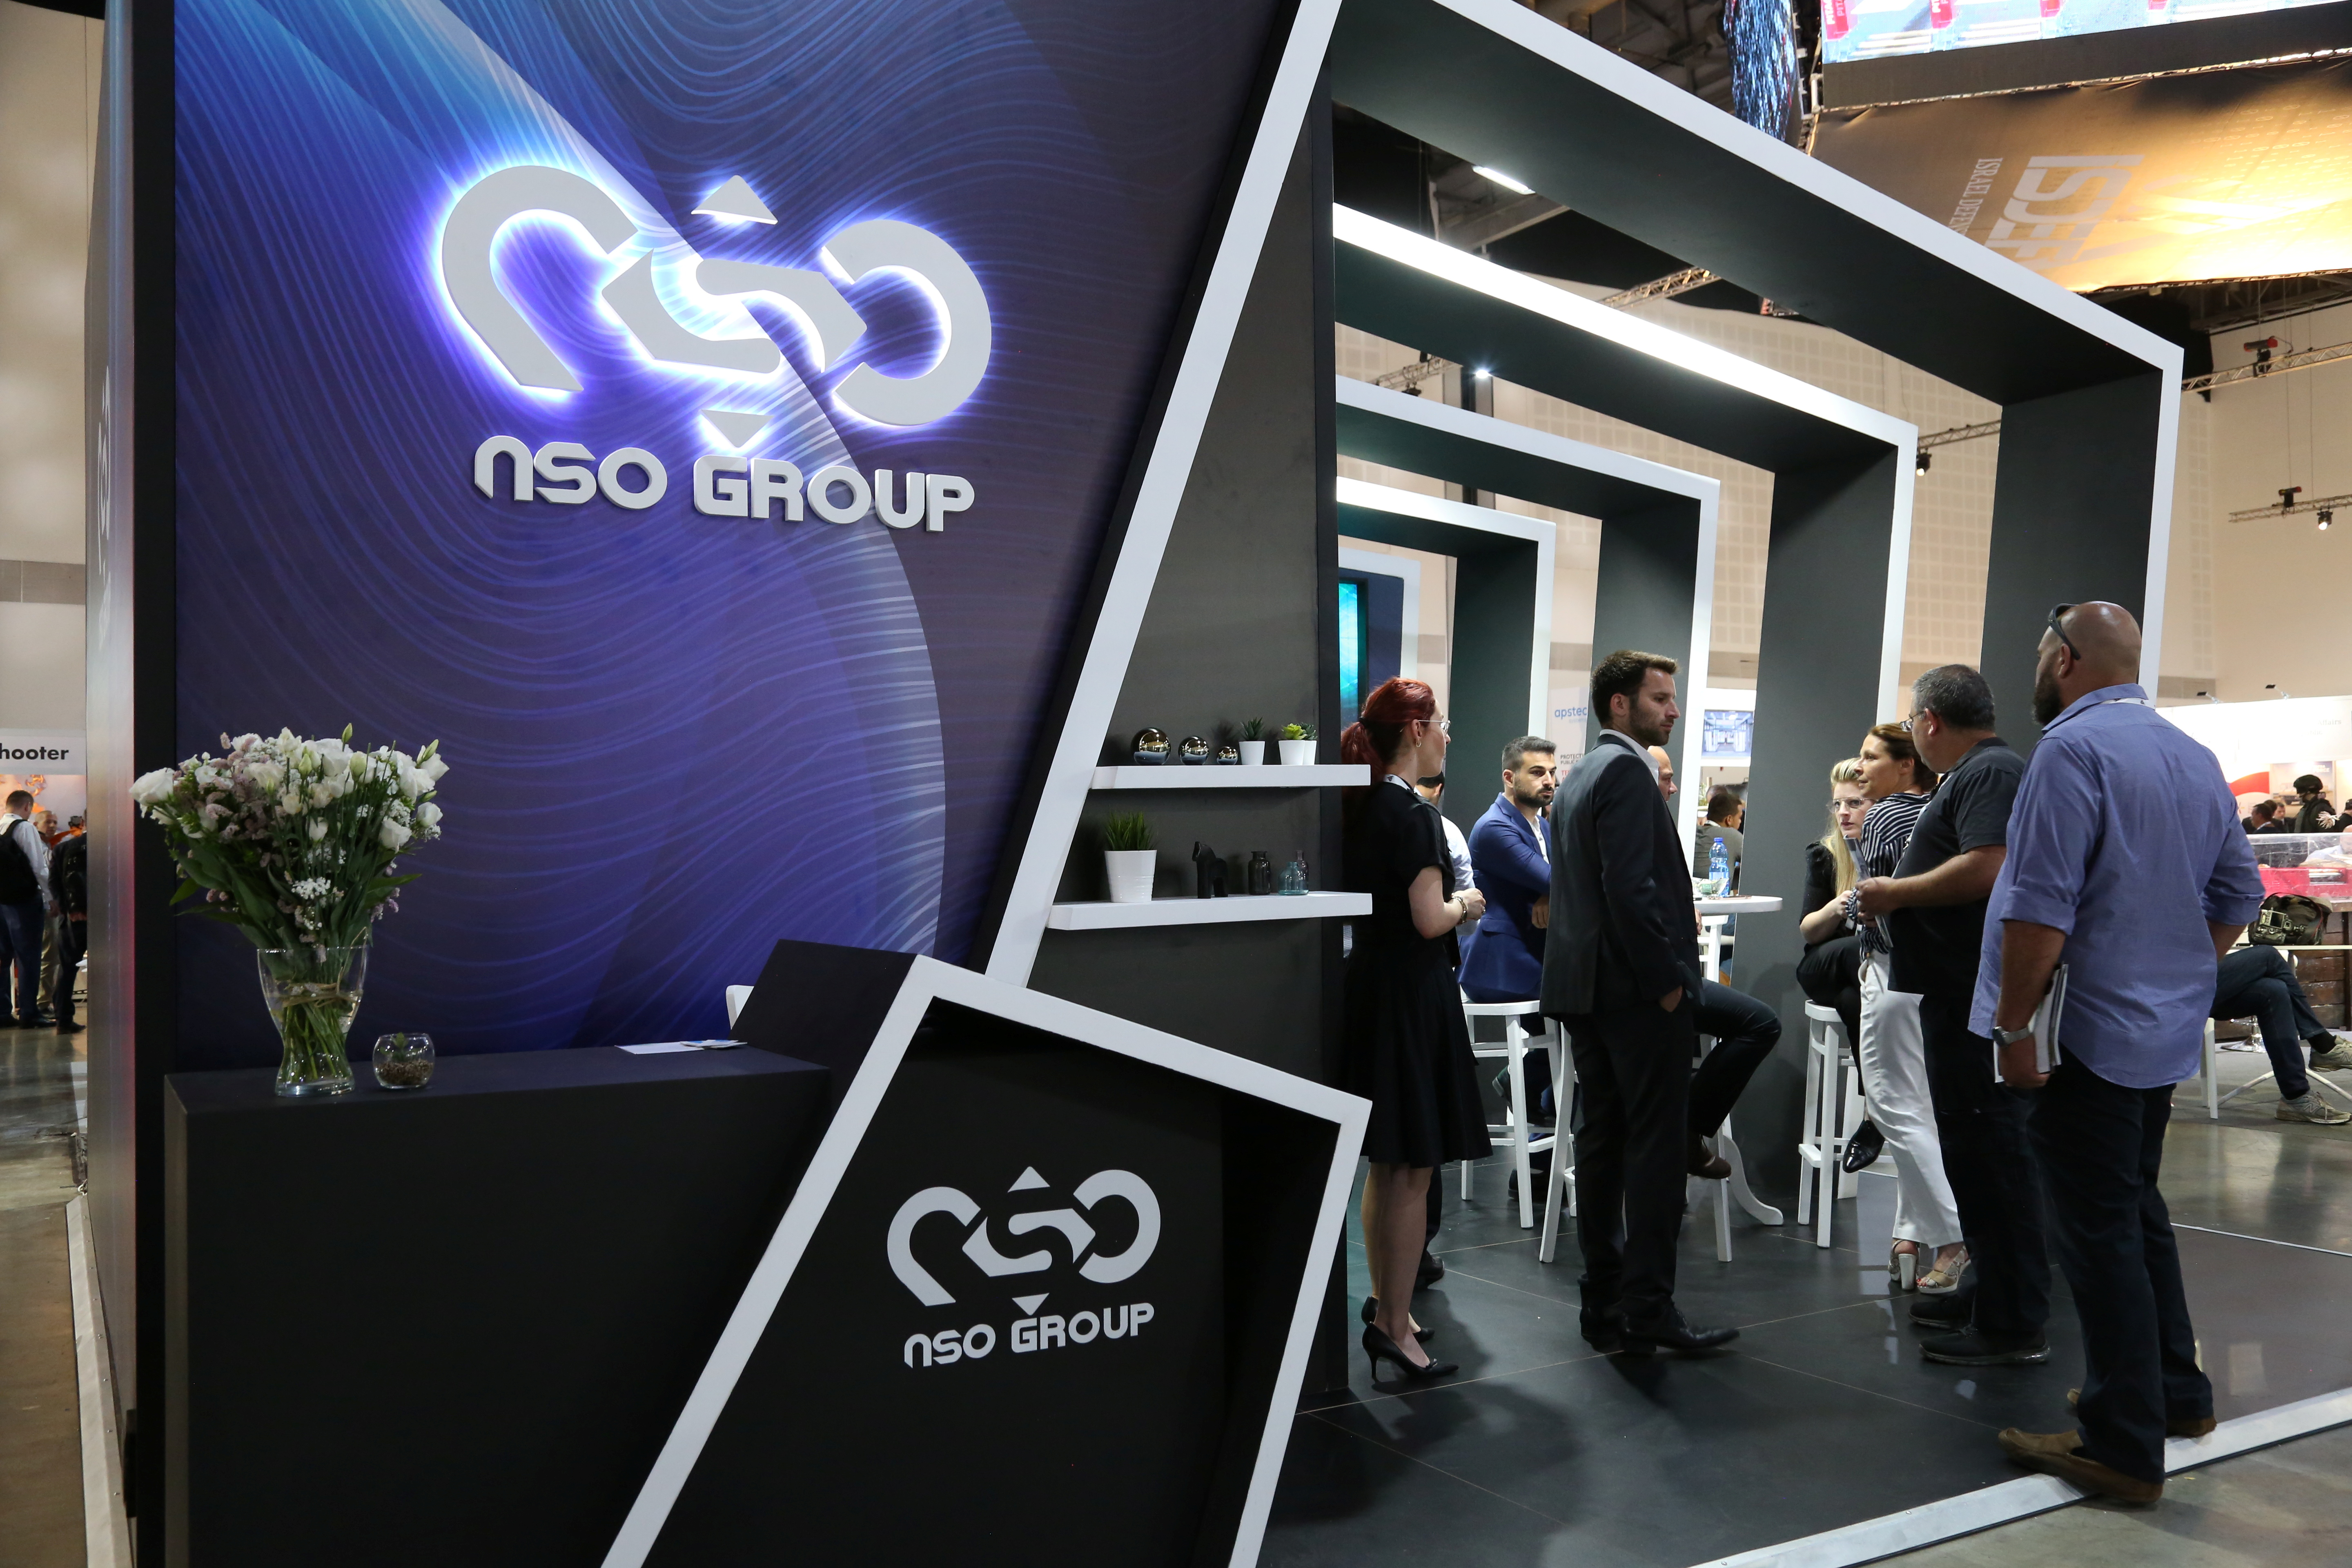 Israeli cyber firm NSO Group's exhibition stand is seen at